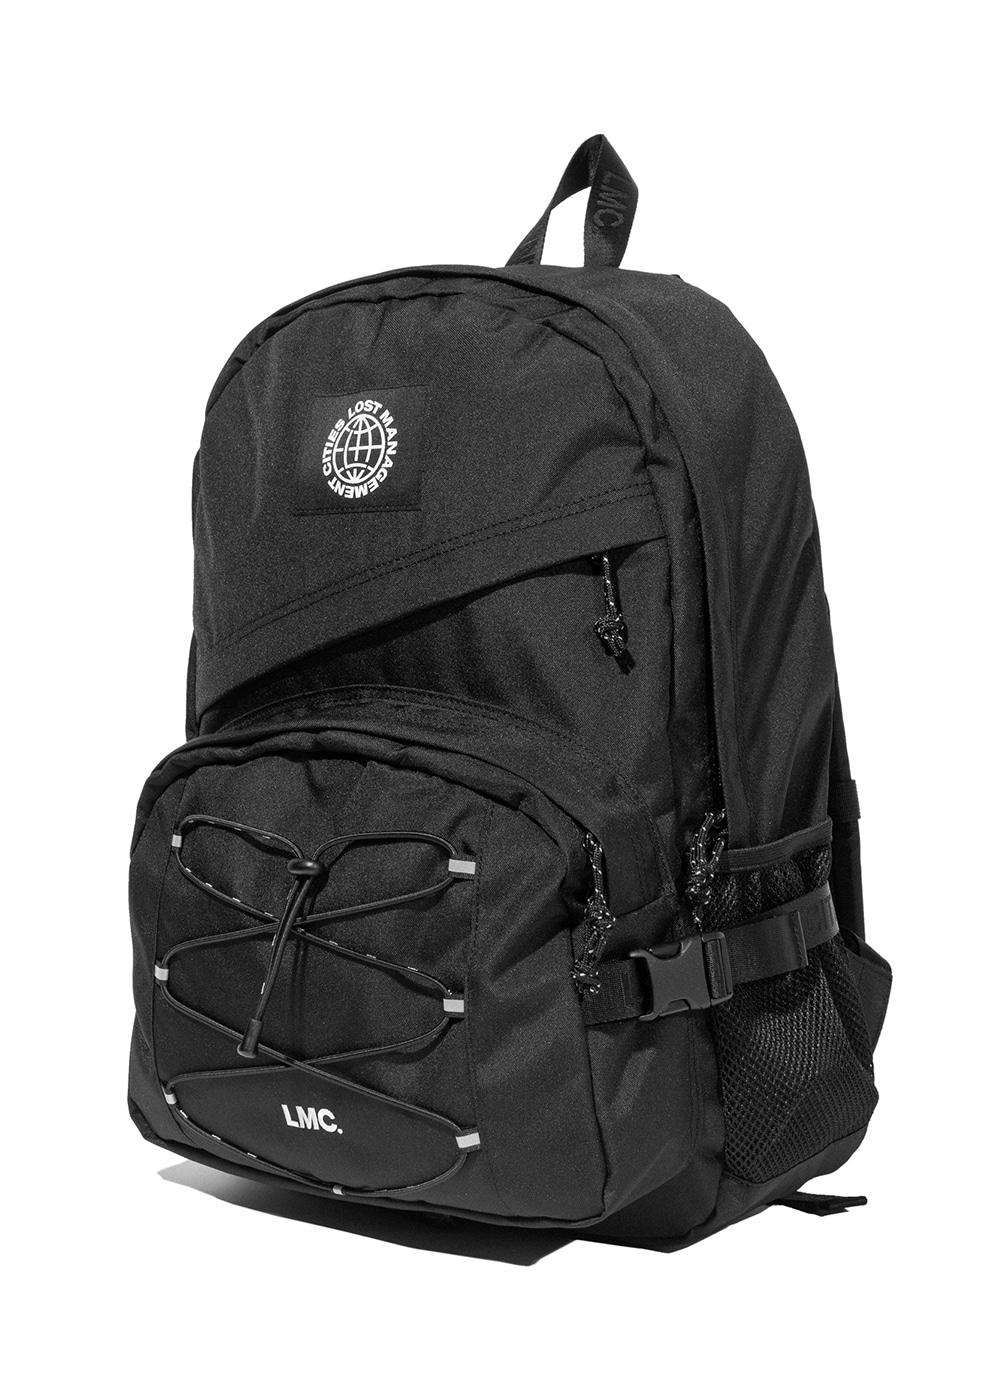 LMC TECHNICAL BACKPACK black